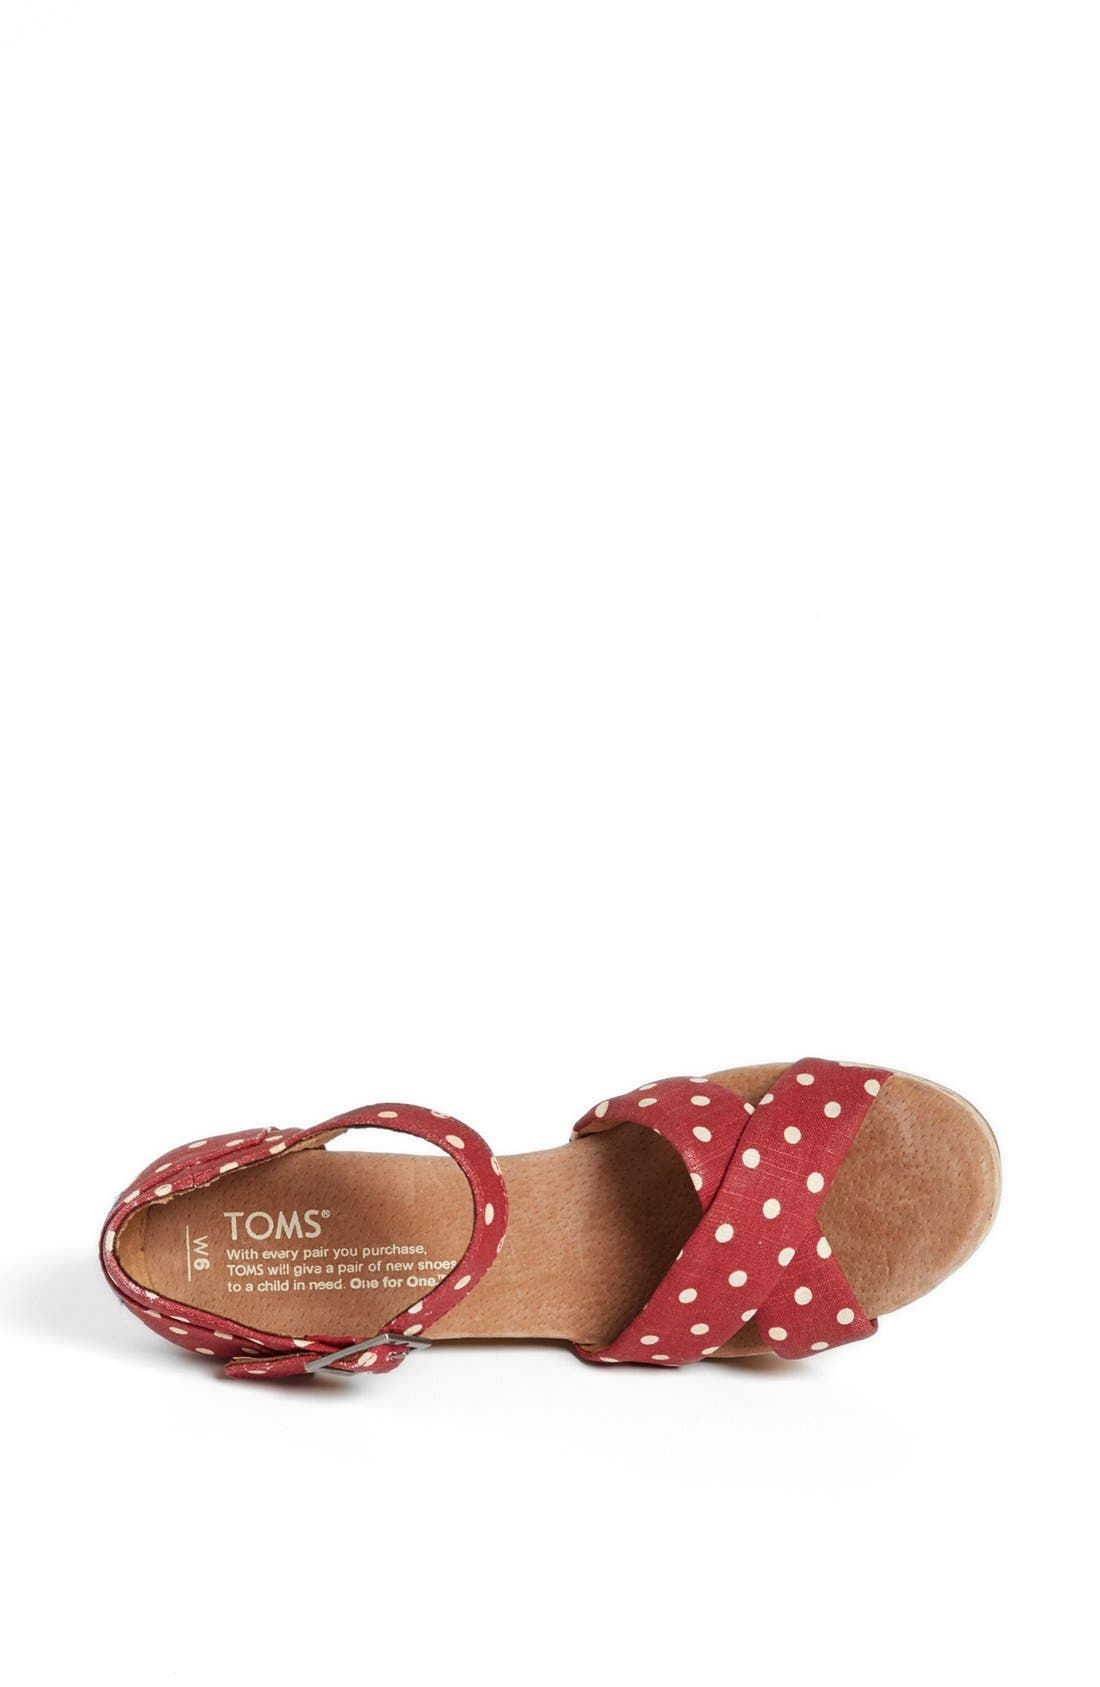 Alternate Image 3  - TOMS Polka Dot Linen Woven Wedge Sandal